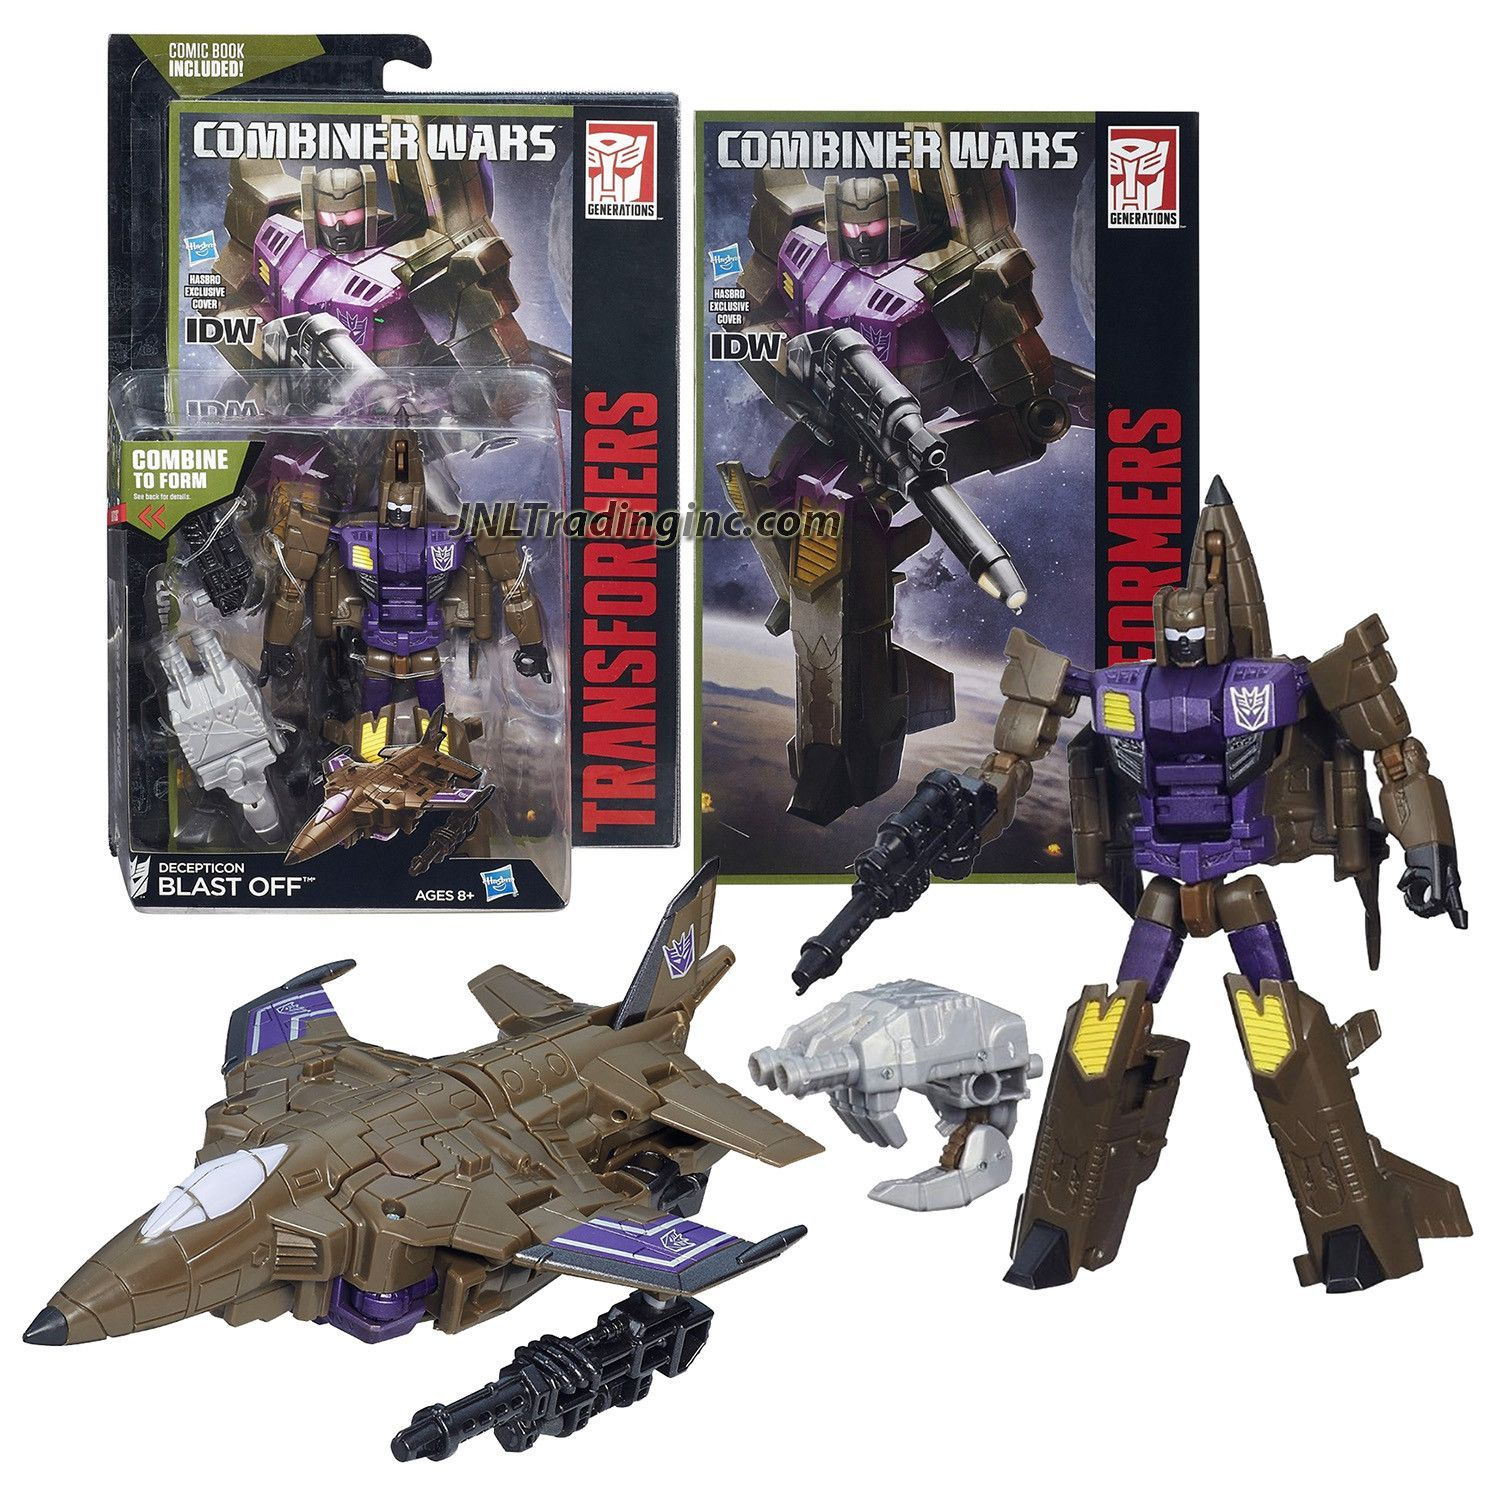 """Transformers Generations Combiner Wars Deluxe Class 5-1/2"""" Tall Figure - Decepticon BLAST OFF with Blaster, Bruticus' Right Arm & Comic Book (Vehicle Mode: Fighter Jet)"""